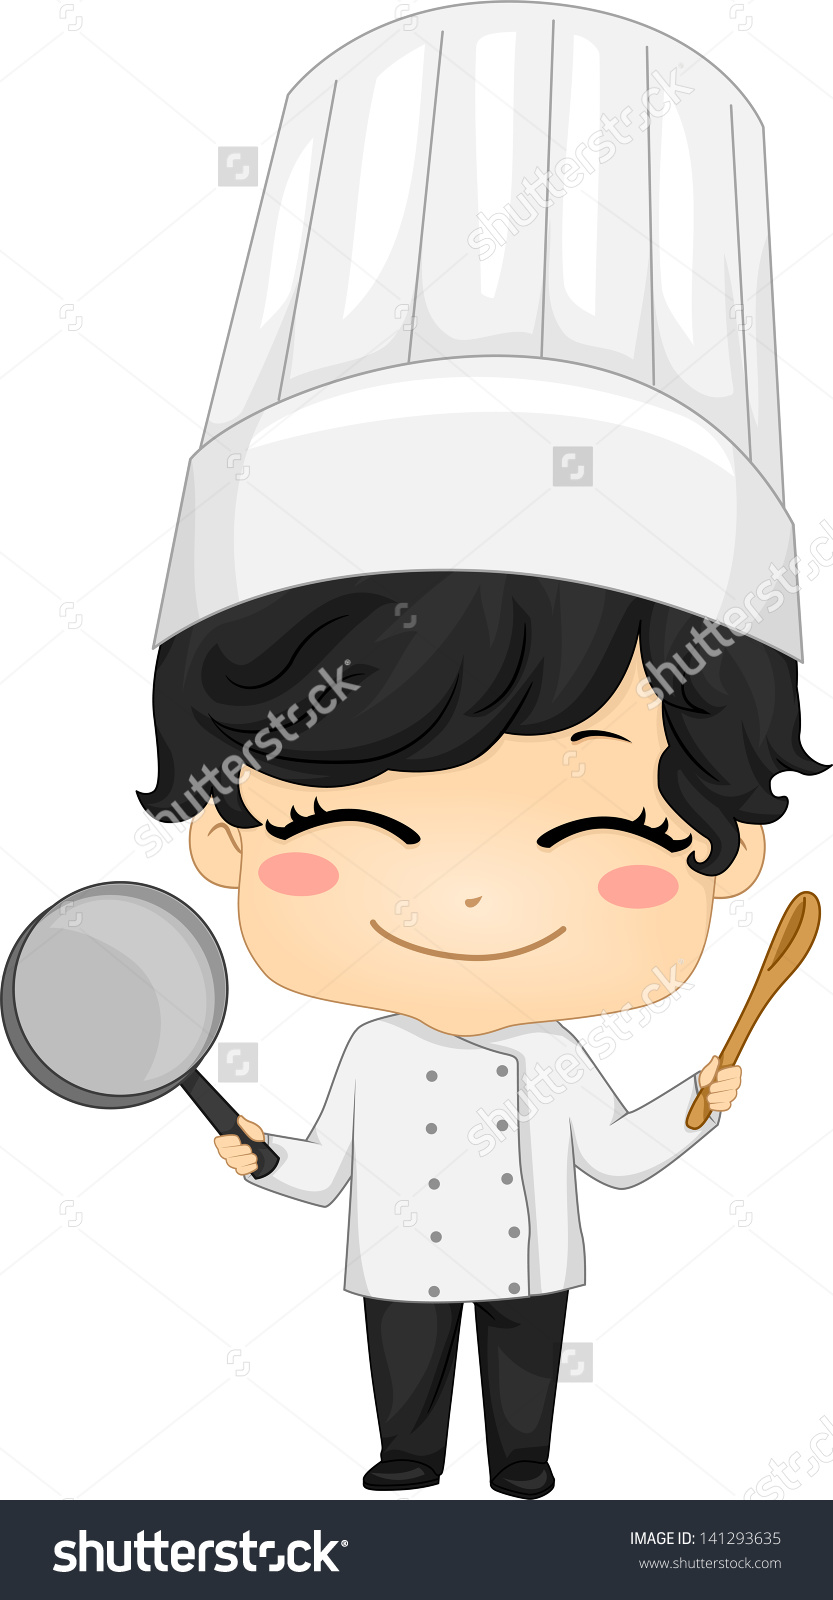 Little chef clipart clip art free stock Illustration Of Little Chef Boy Holding A Saucepan And A Kitchen ... clip art free stock